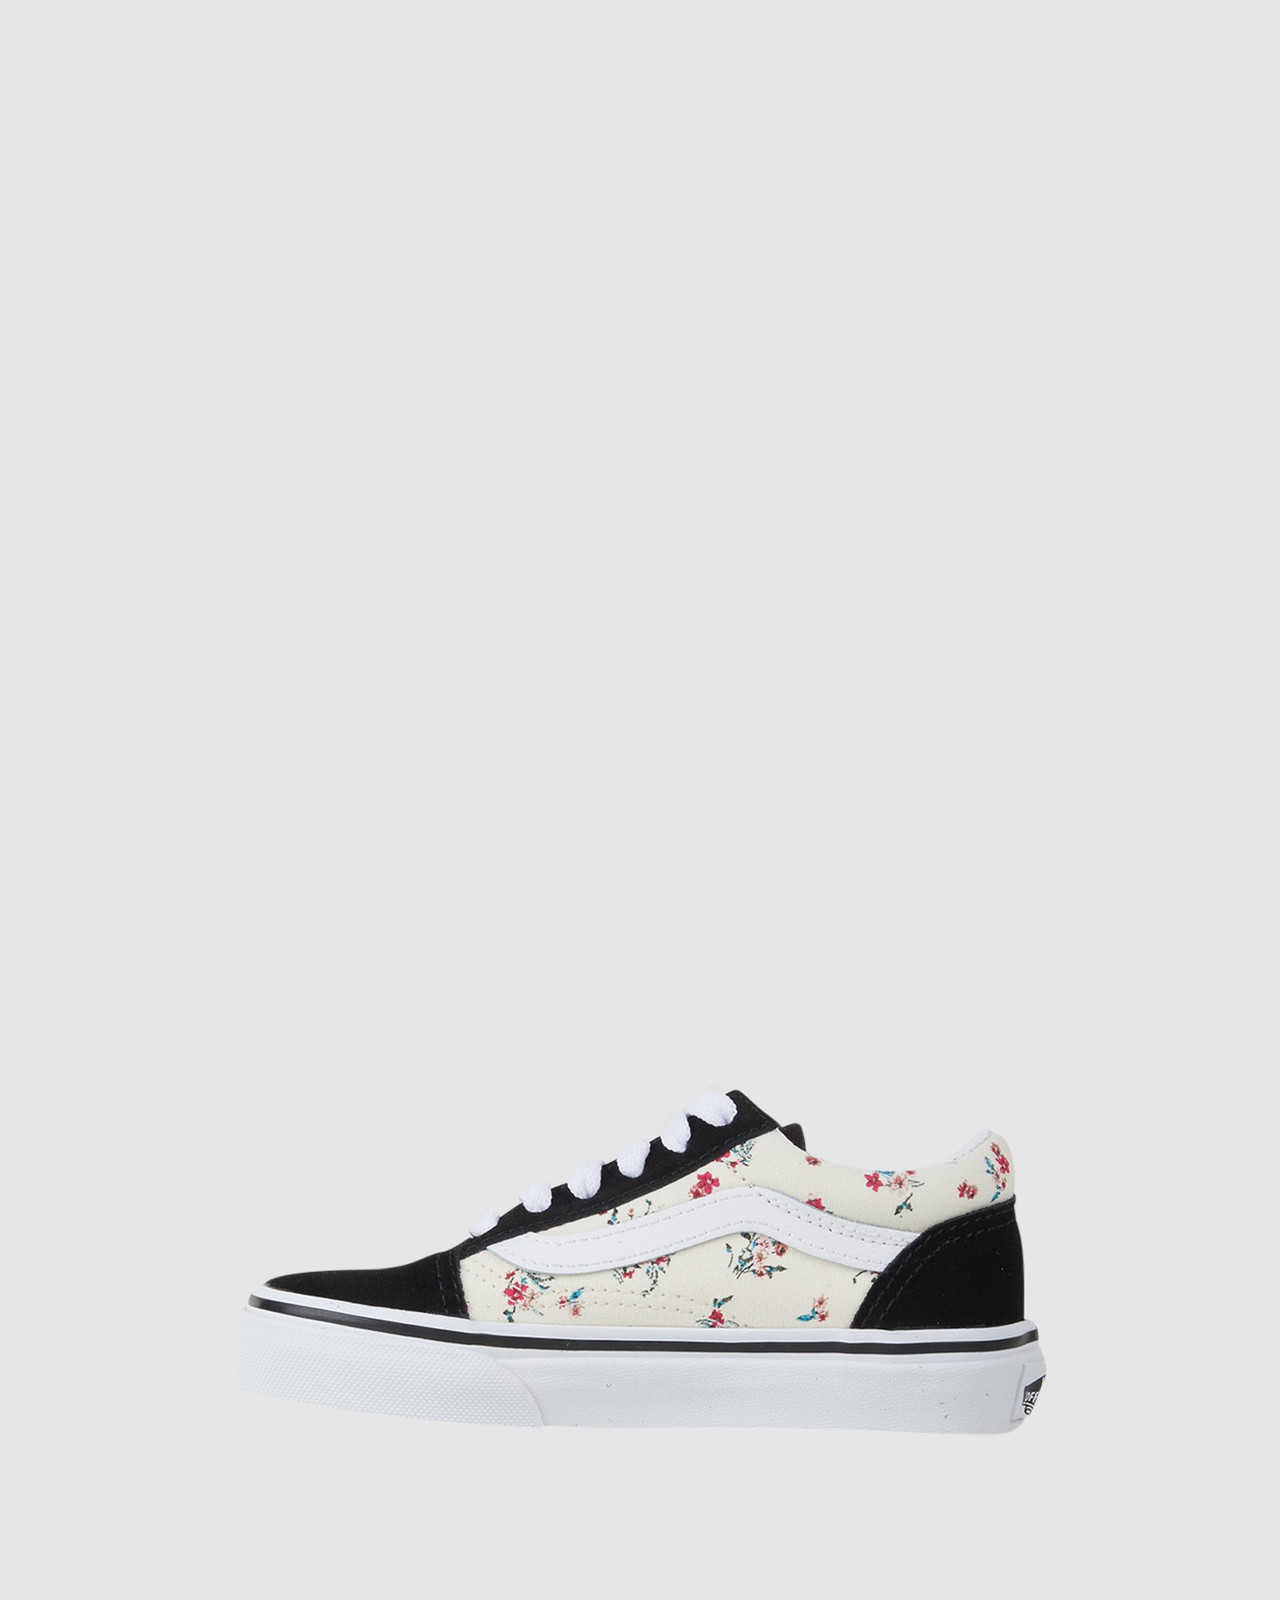 Shoes & Sox Girls Old Skool Floral Youth Black/Floral